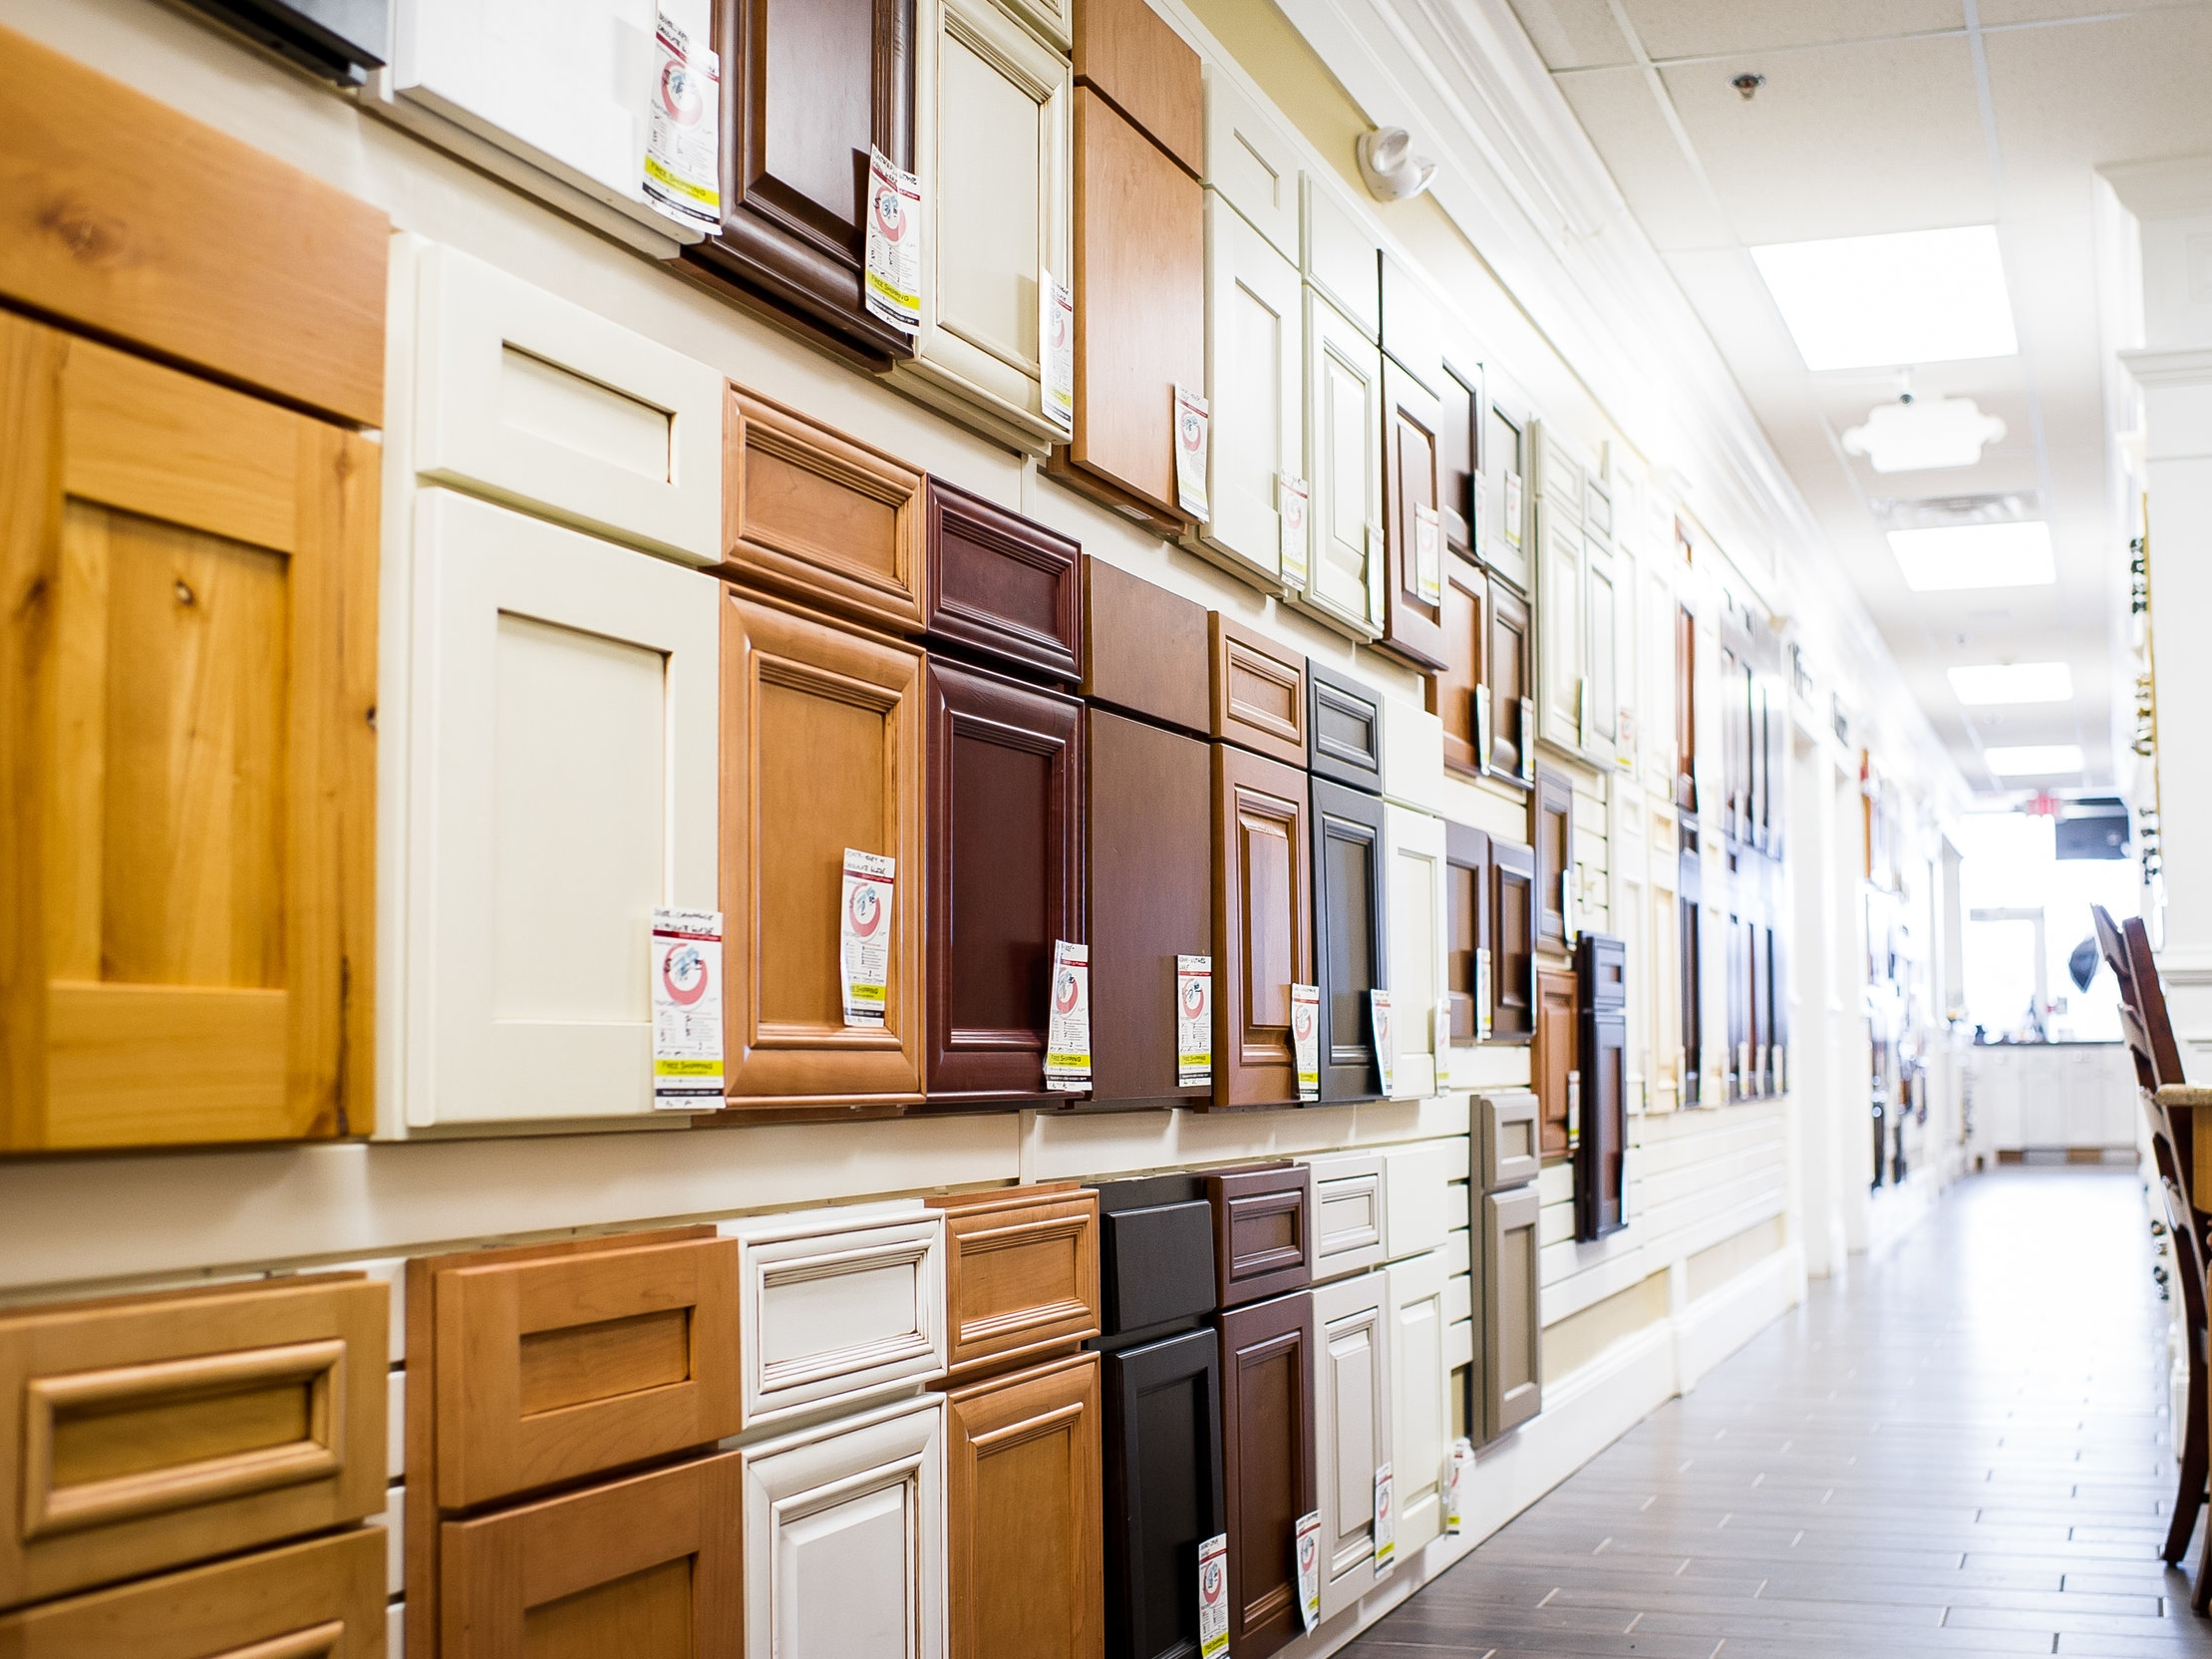 Selection - We offer the largest selection of Kitchen and Bath manufacturers in the area. We have something for everyone!